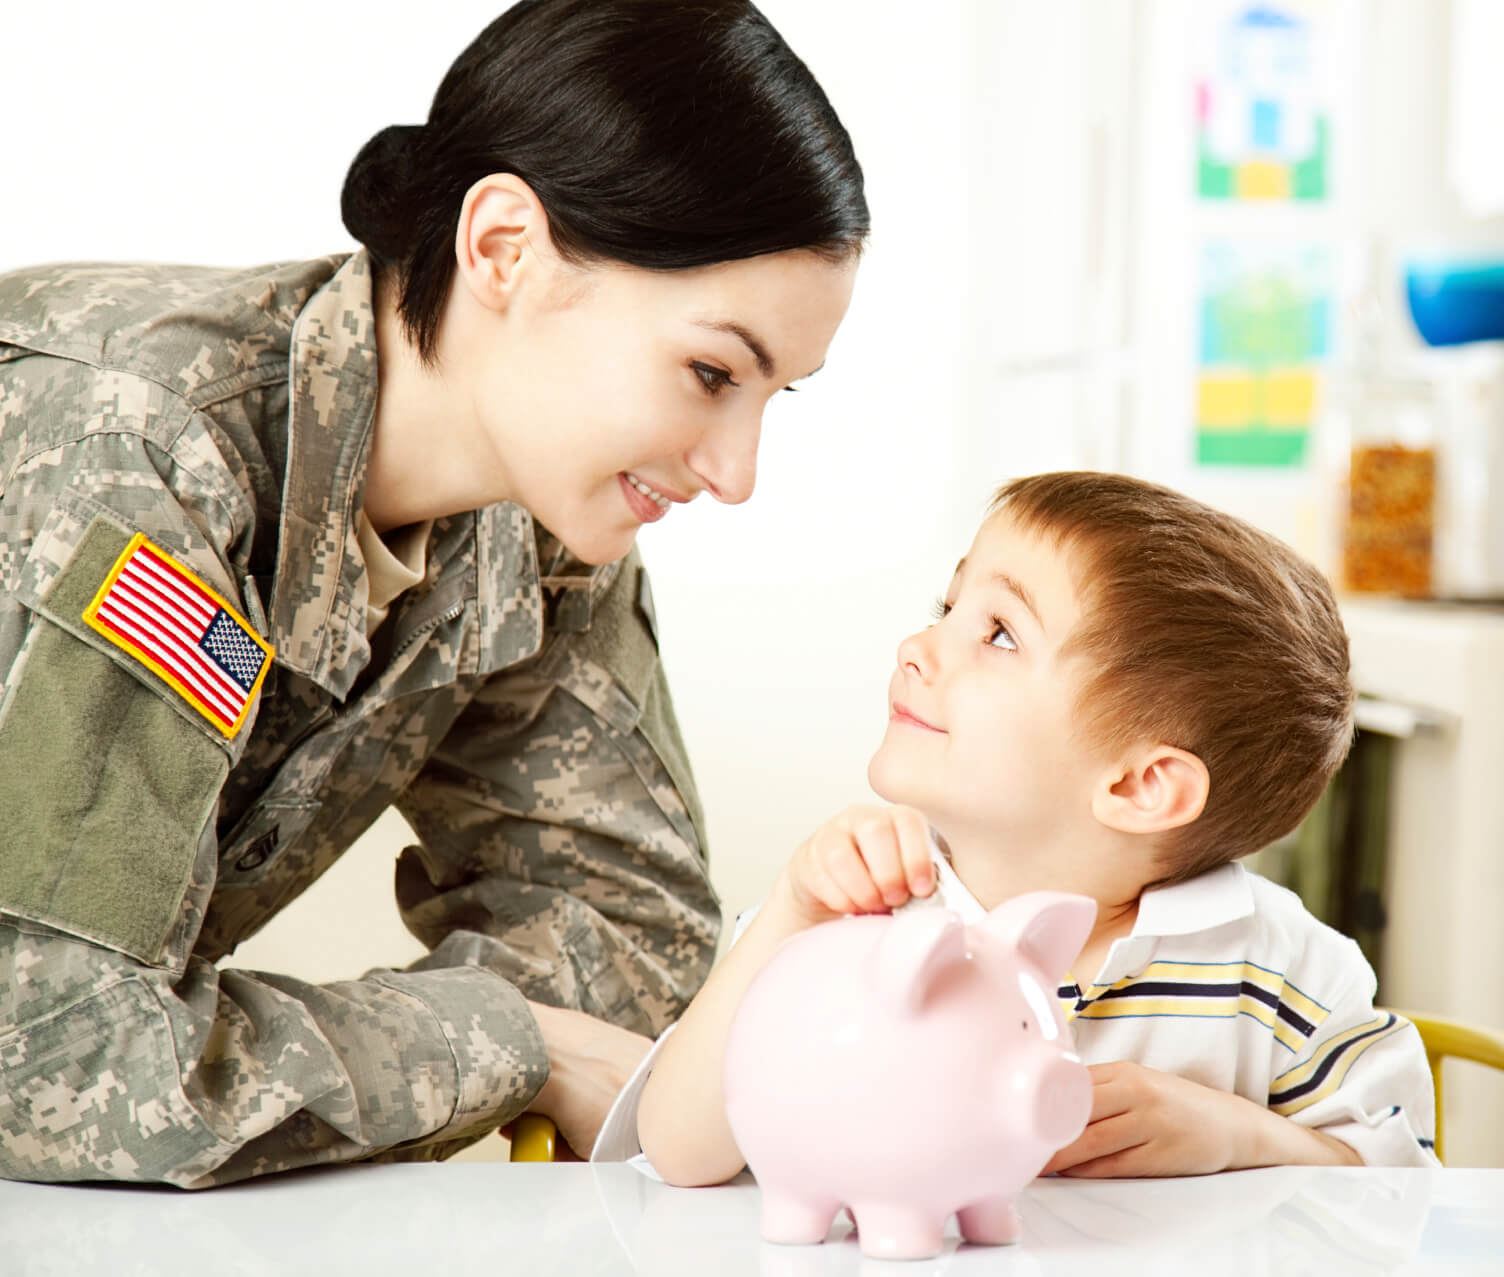 https://www.consolidatedcredit.org/wp-content/uploads/2019/02/Moms-in-Military-Service.jpg